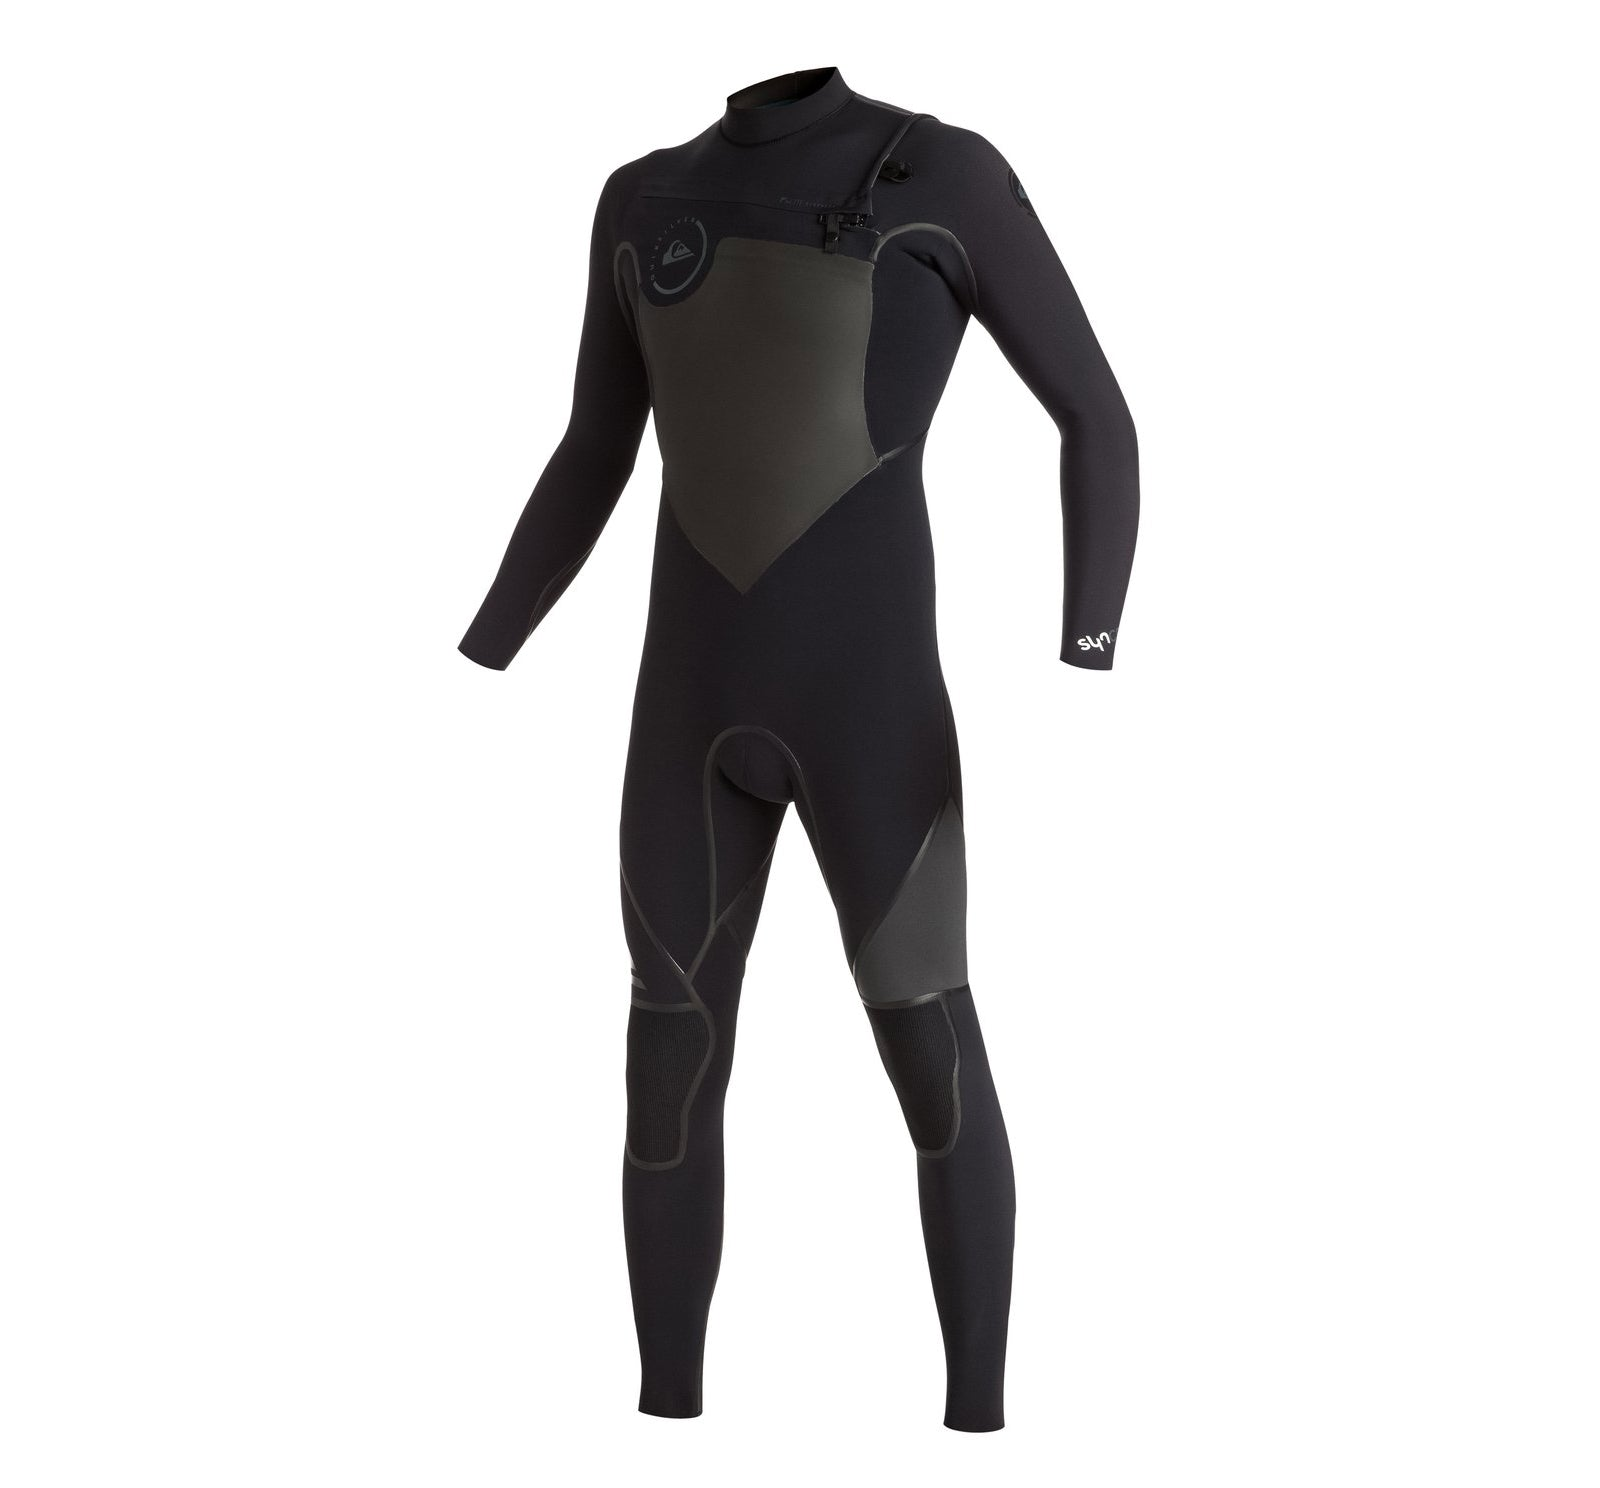 Quiksilver Syncro Plus 3/2 Chest Zip Men's Fullsuit Wetsuit